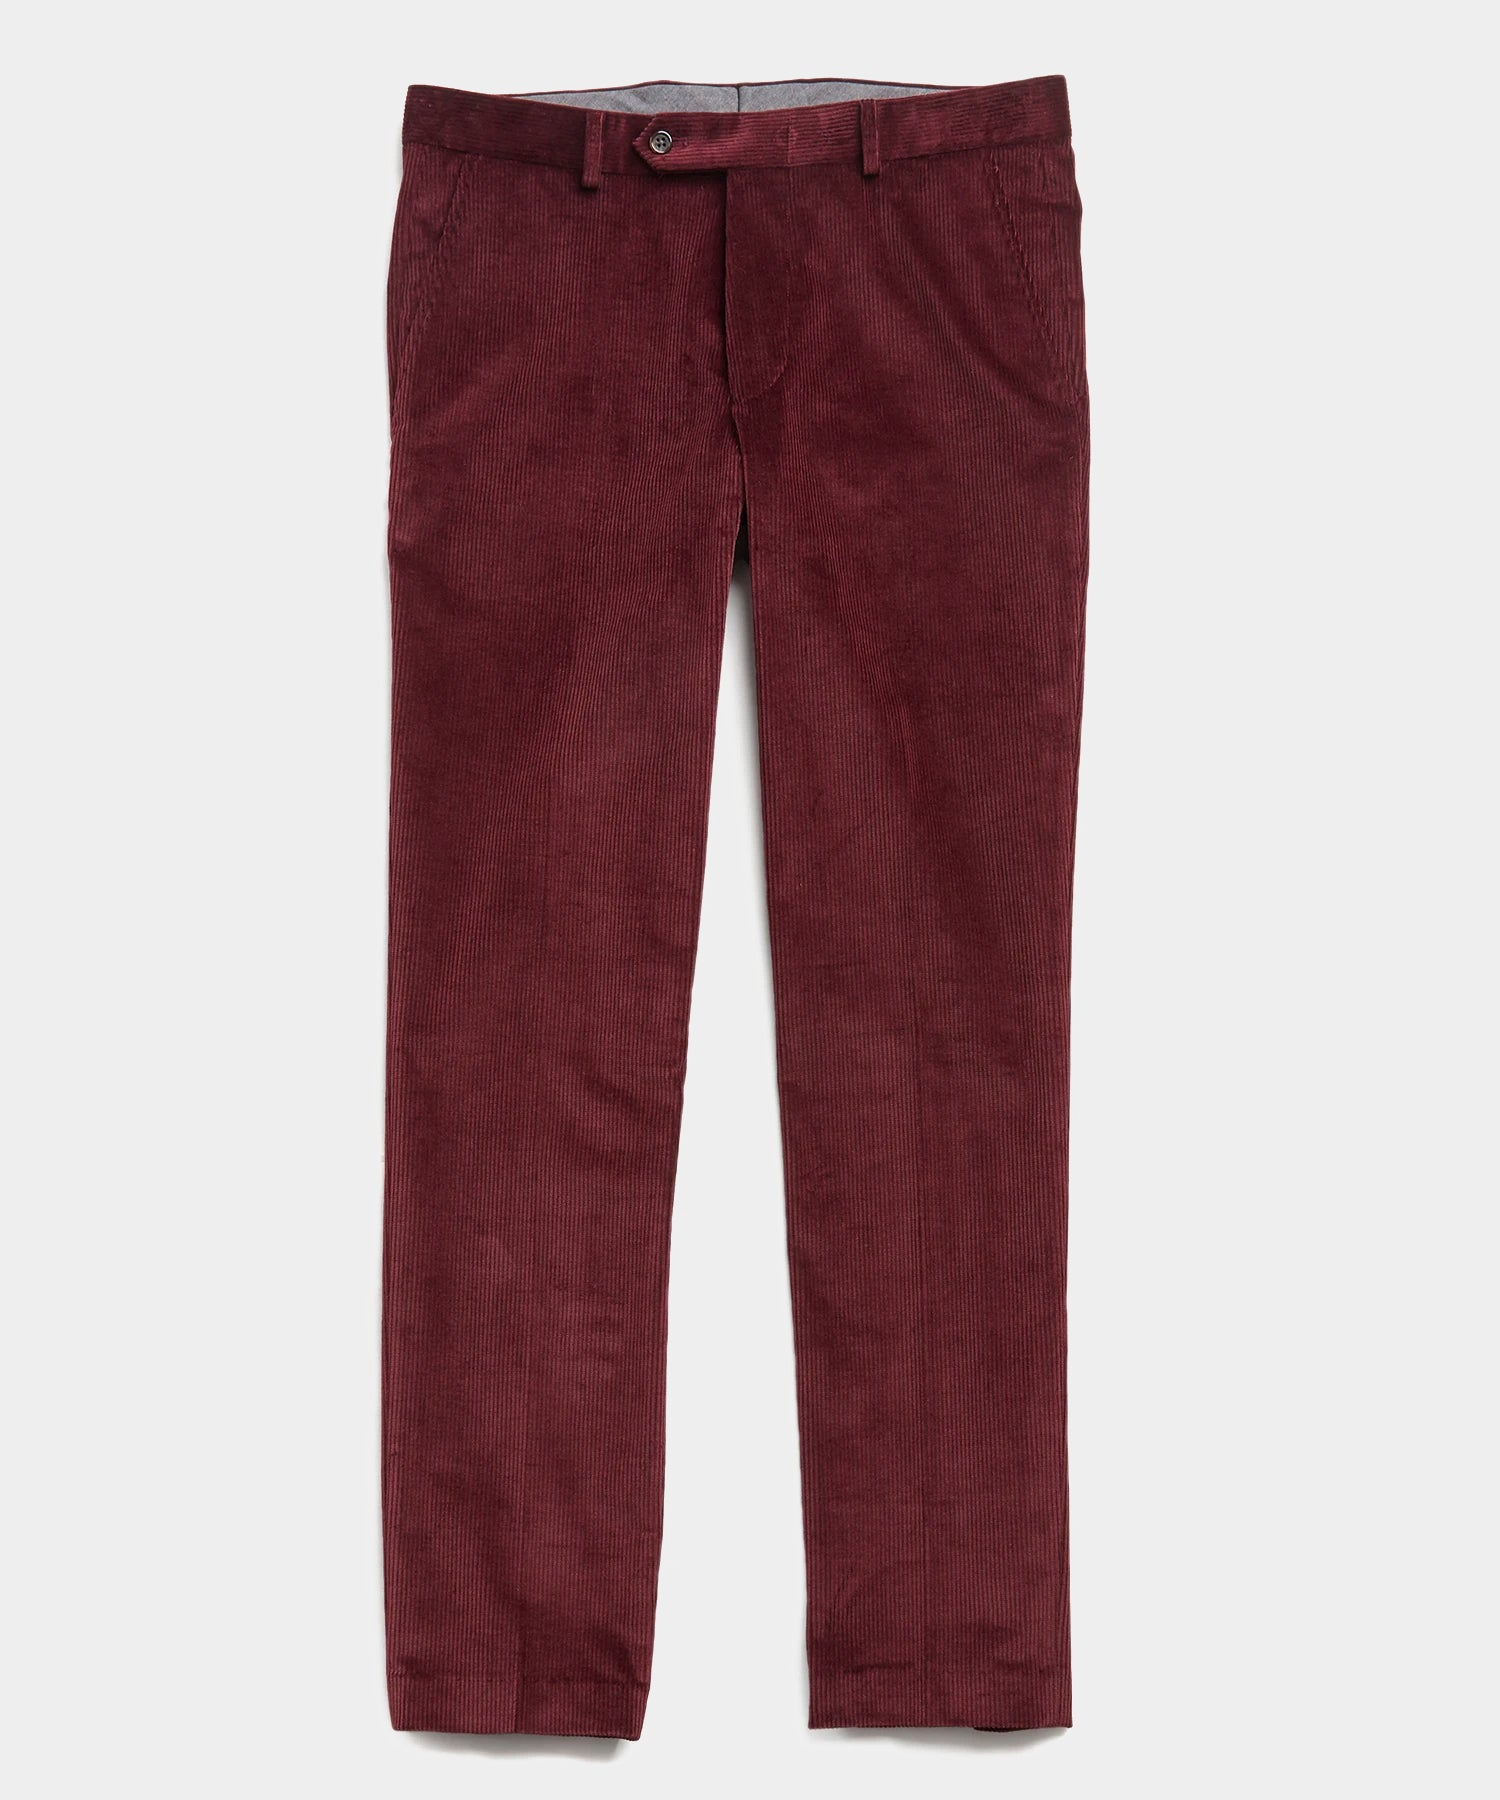 Sutton Corduroy Trouser in Burgundy